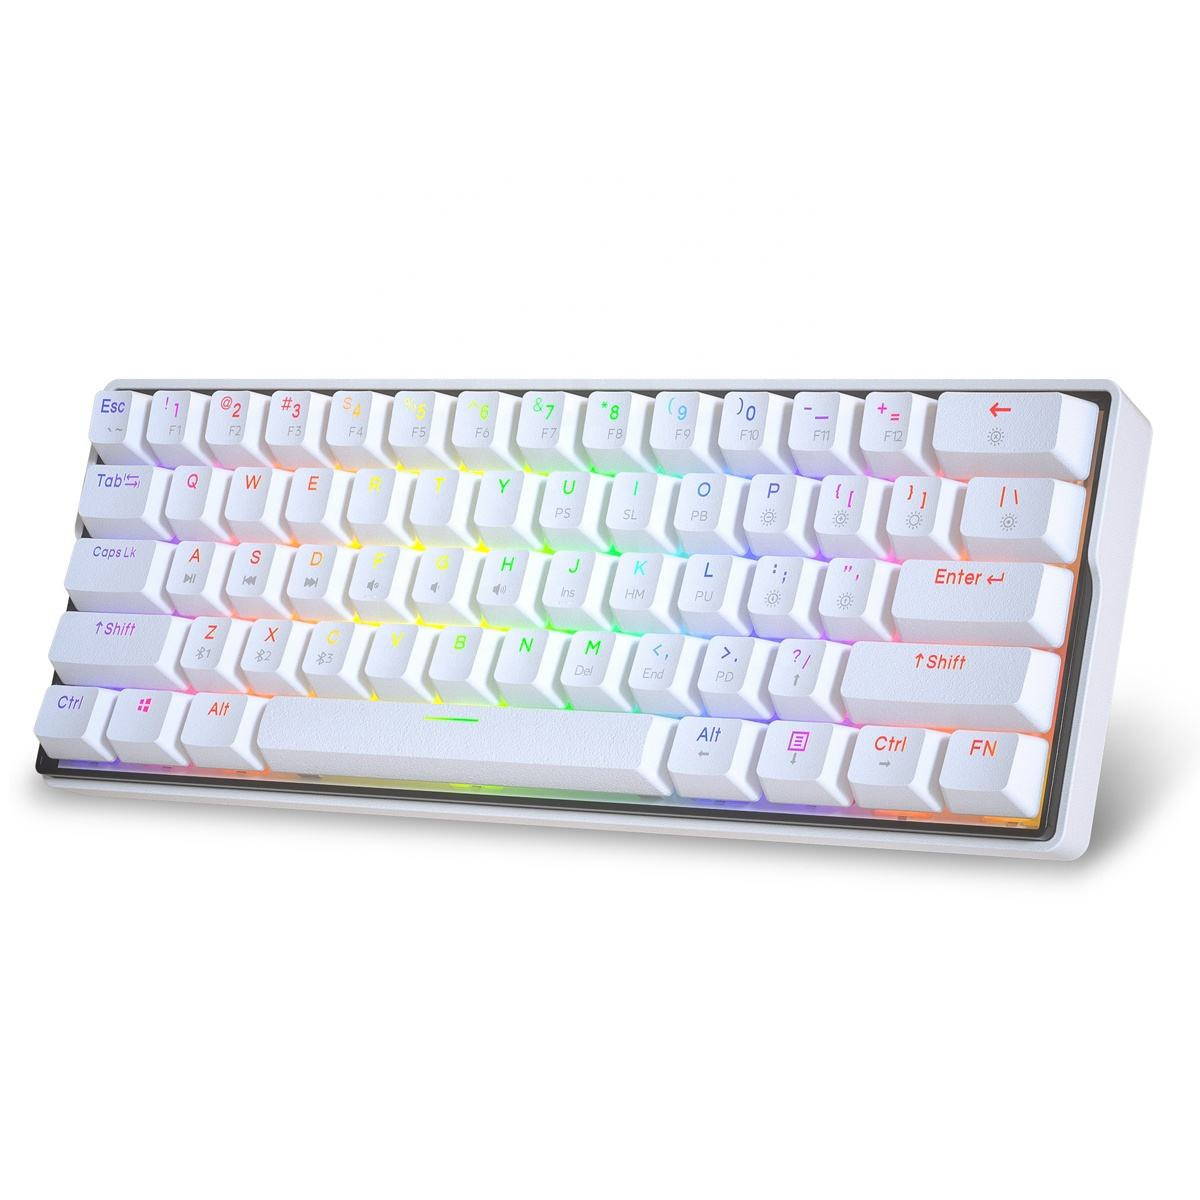 Hot sell KEMOVE DK61 Snowfox Bluetooth5.1 60% Gaming mechanical Keyboard for PC/Android/IOS